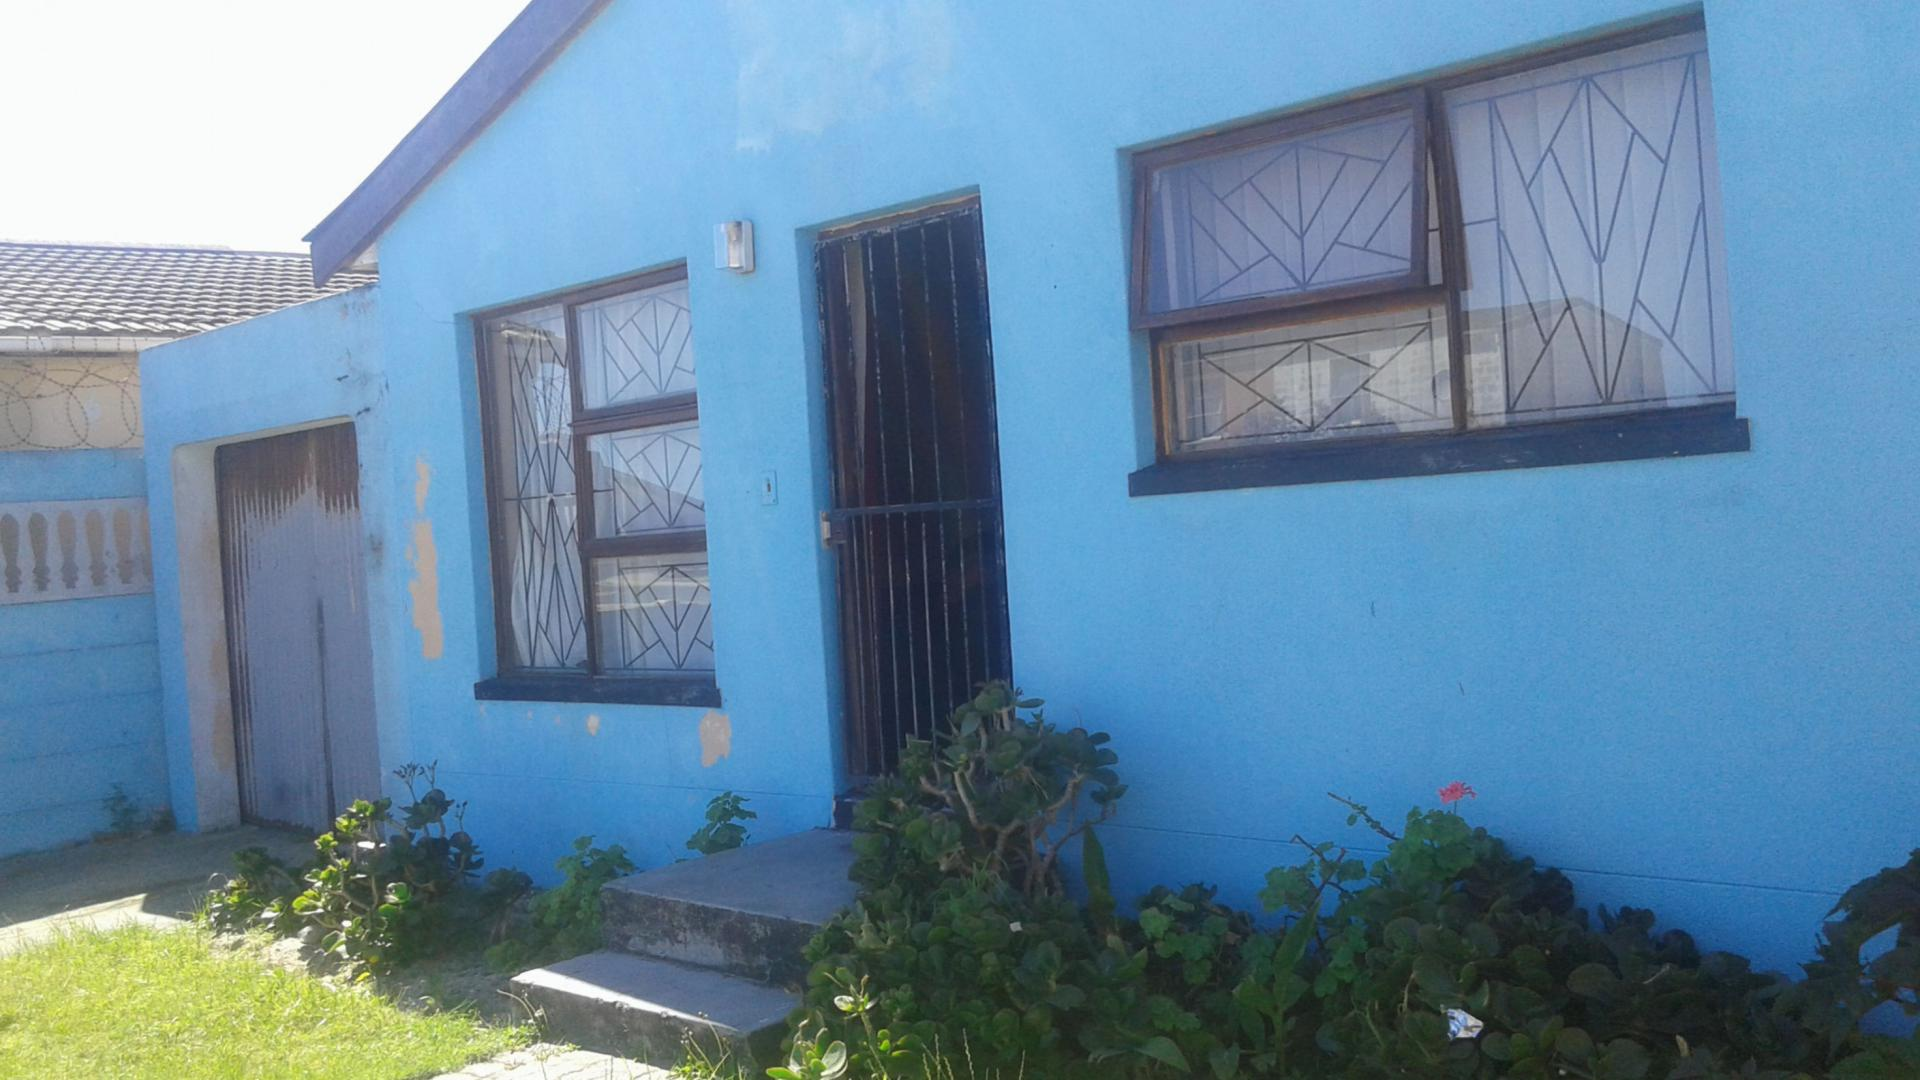 property for sale in strandfontein - myroof.co.za